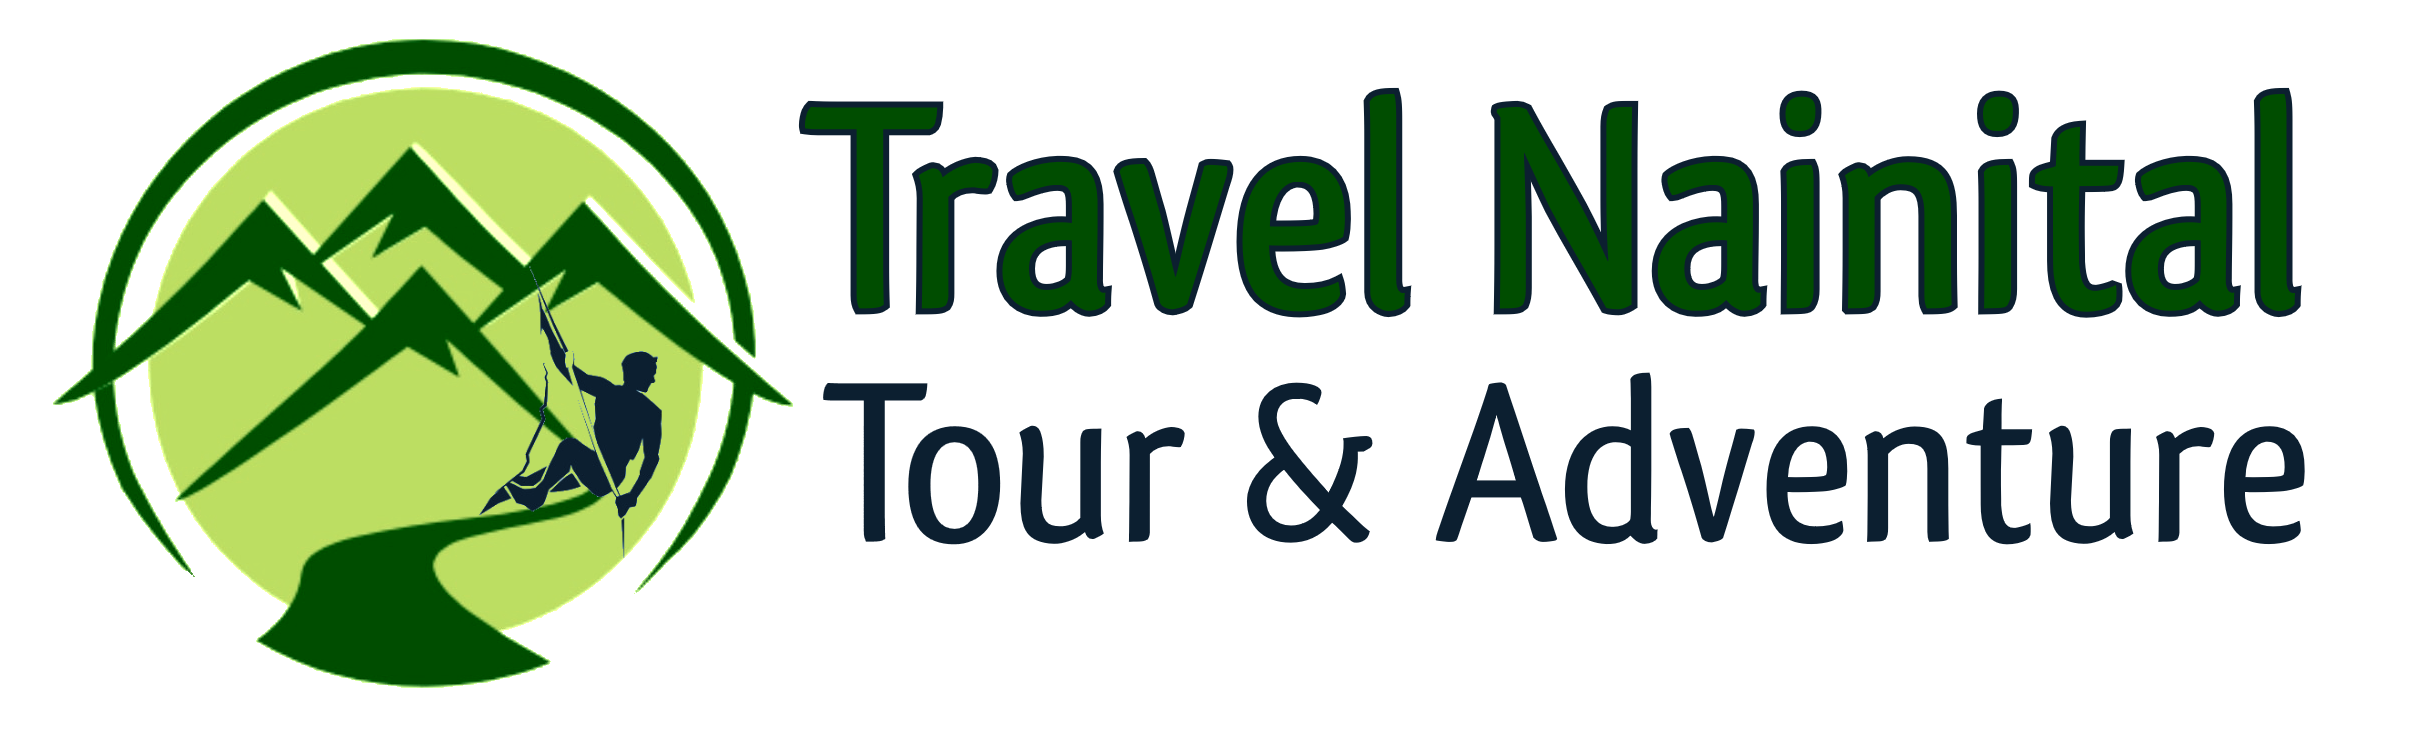 Best tour travel nainital